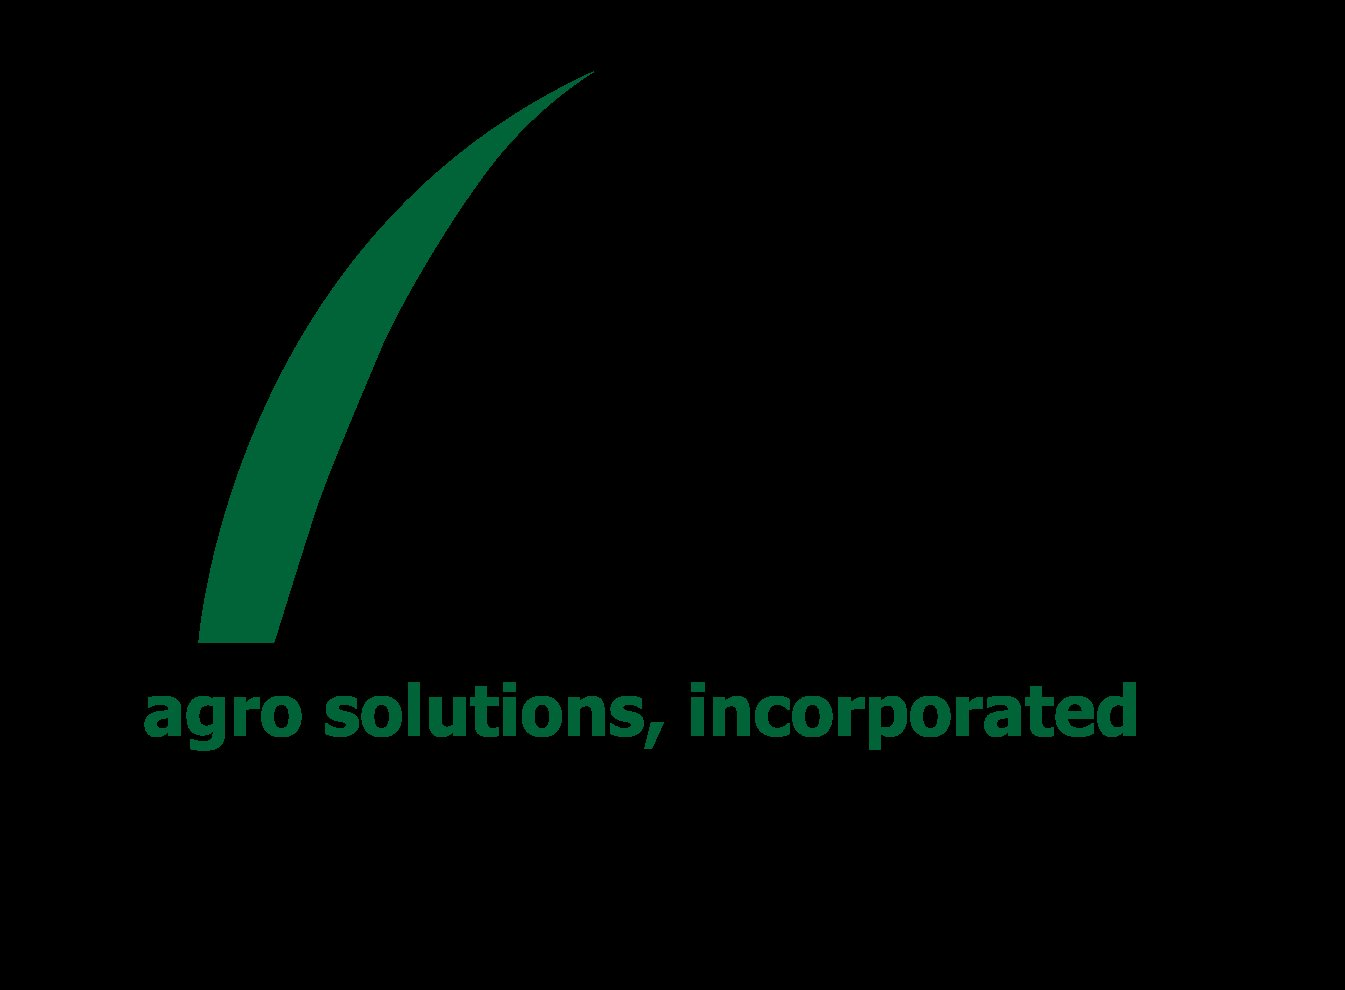 VAST AGRO SOLUTIONS INC.(CROP PROTECTION)